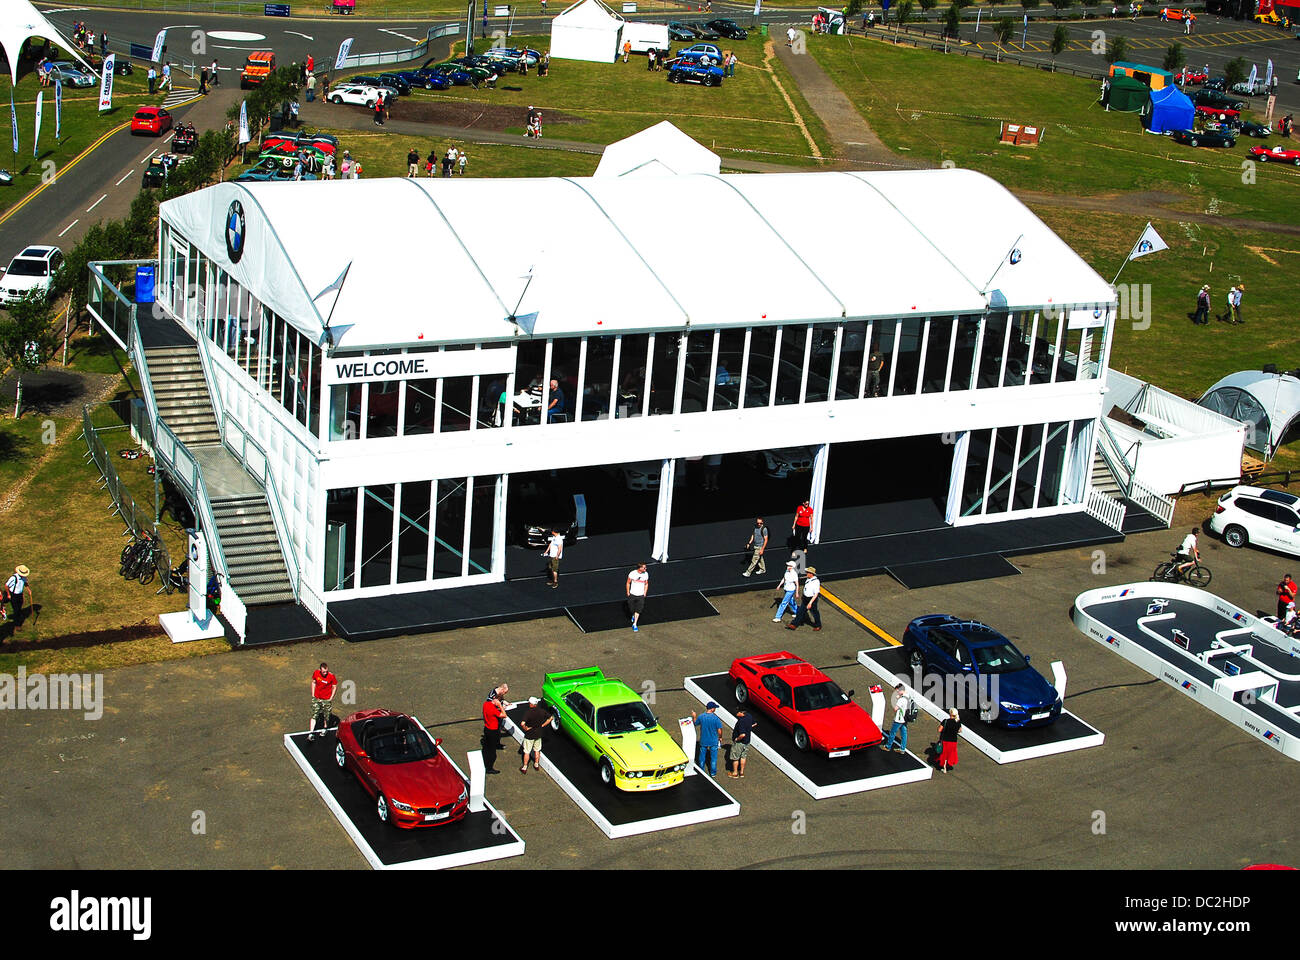 Aerial view of Silverstone race circuit - Stock Image